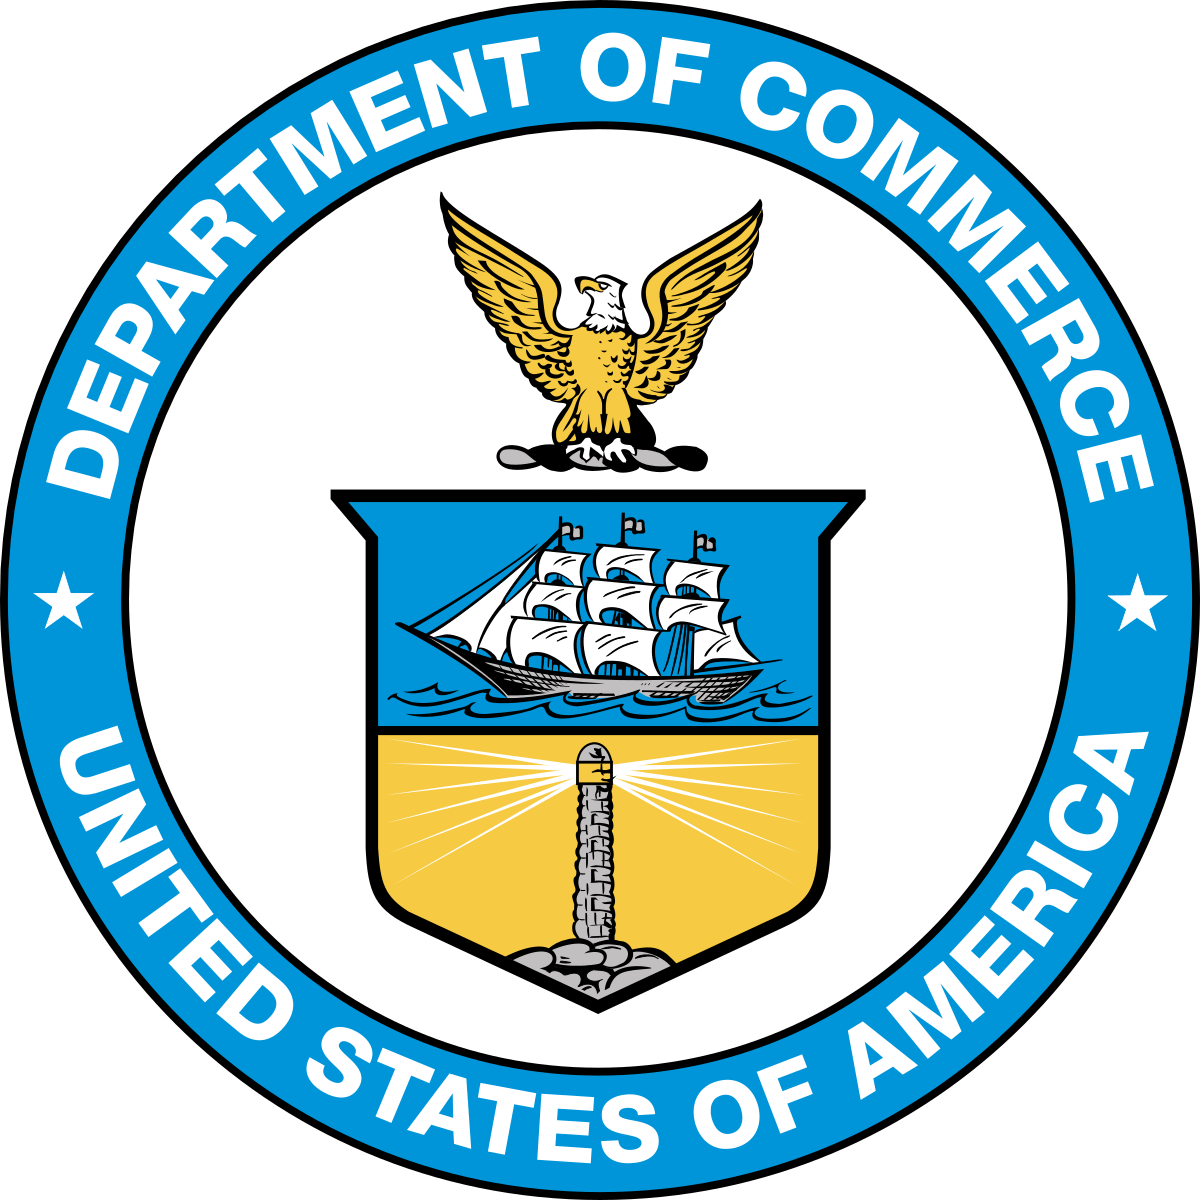 US Department of Commerce Sustainability